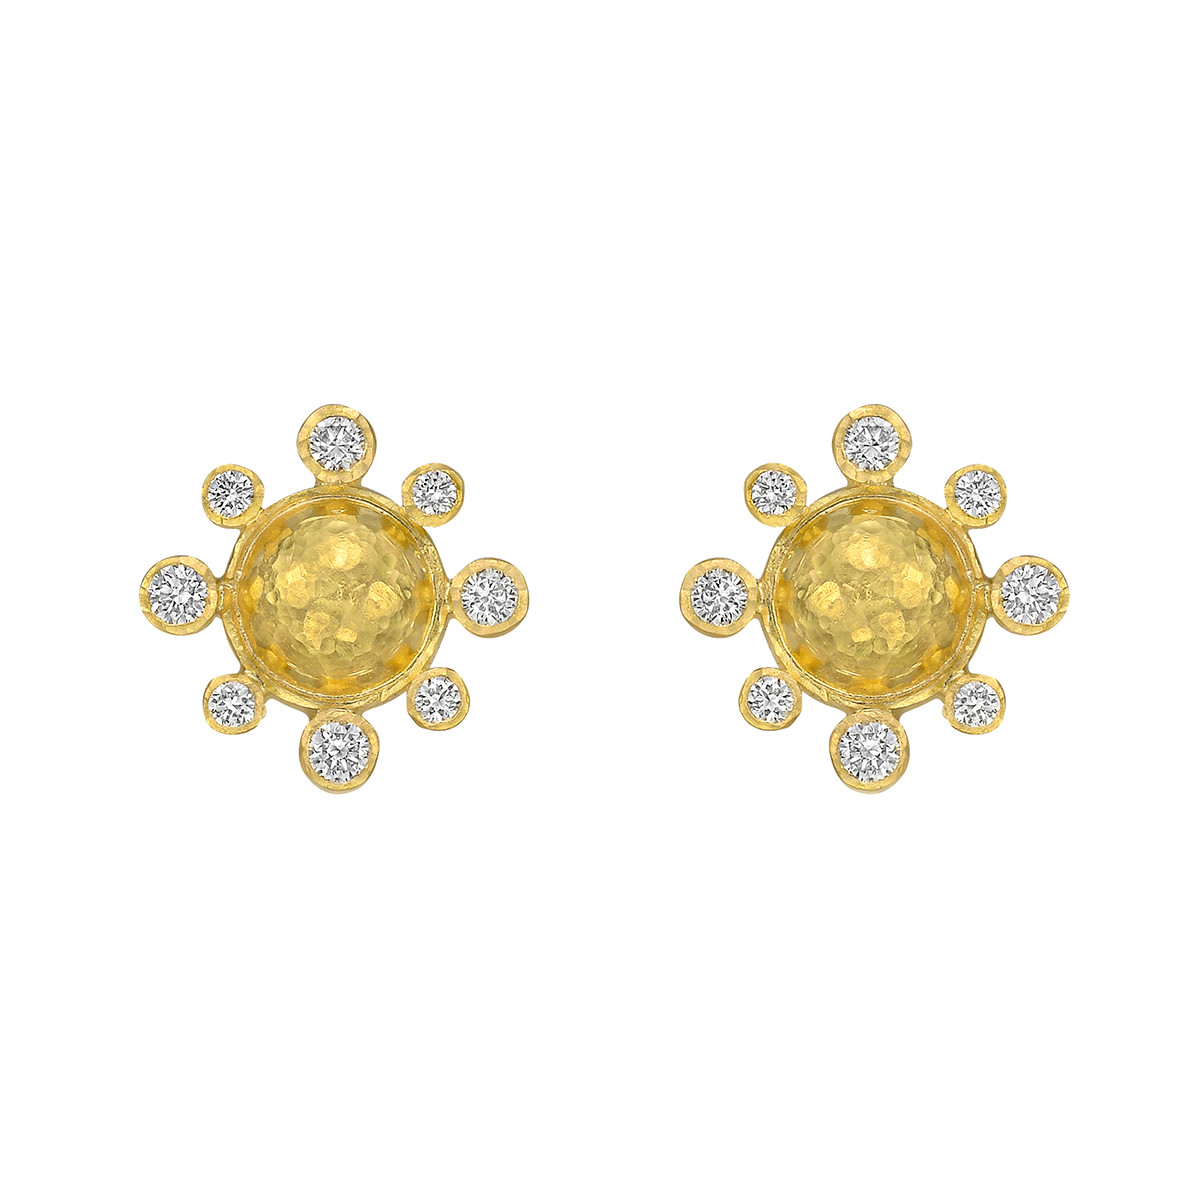 19k Yellow Gold & Diamond Stud Earrings